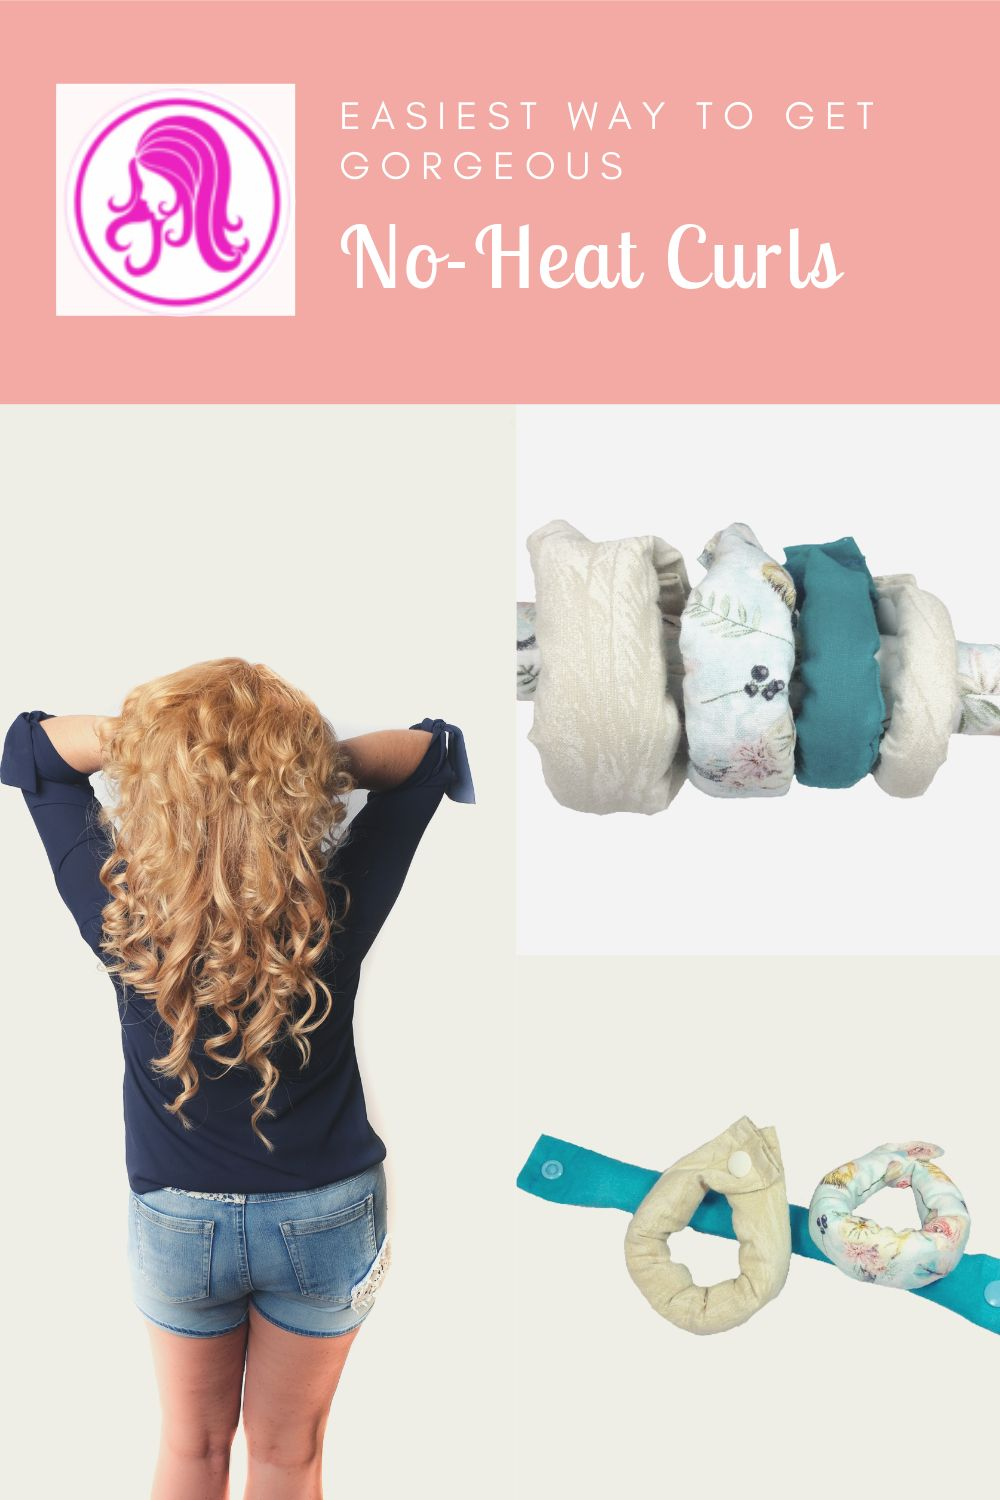 Spring fashion heat free hair rollers for awesome easy curls. No foam or wires are inside our rollers.